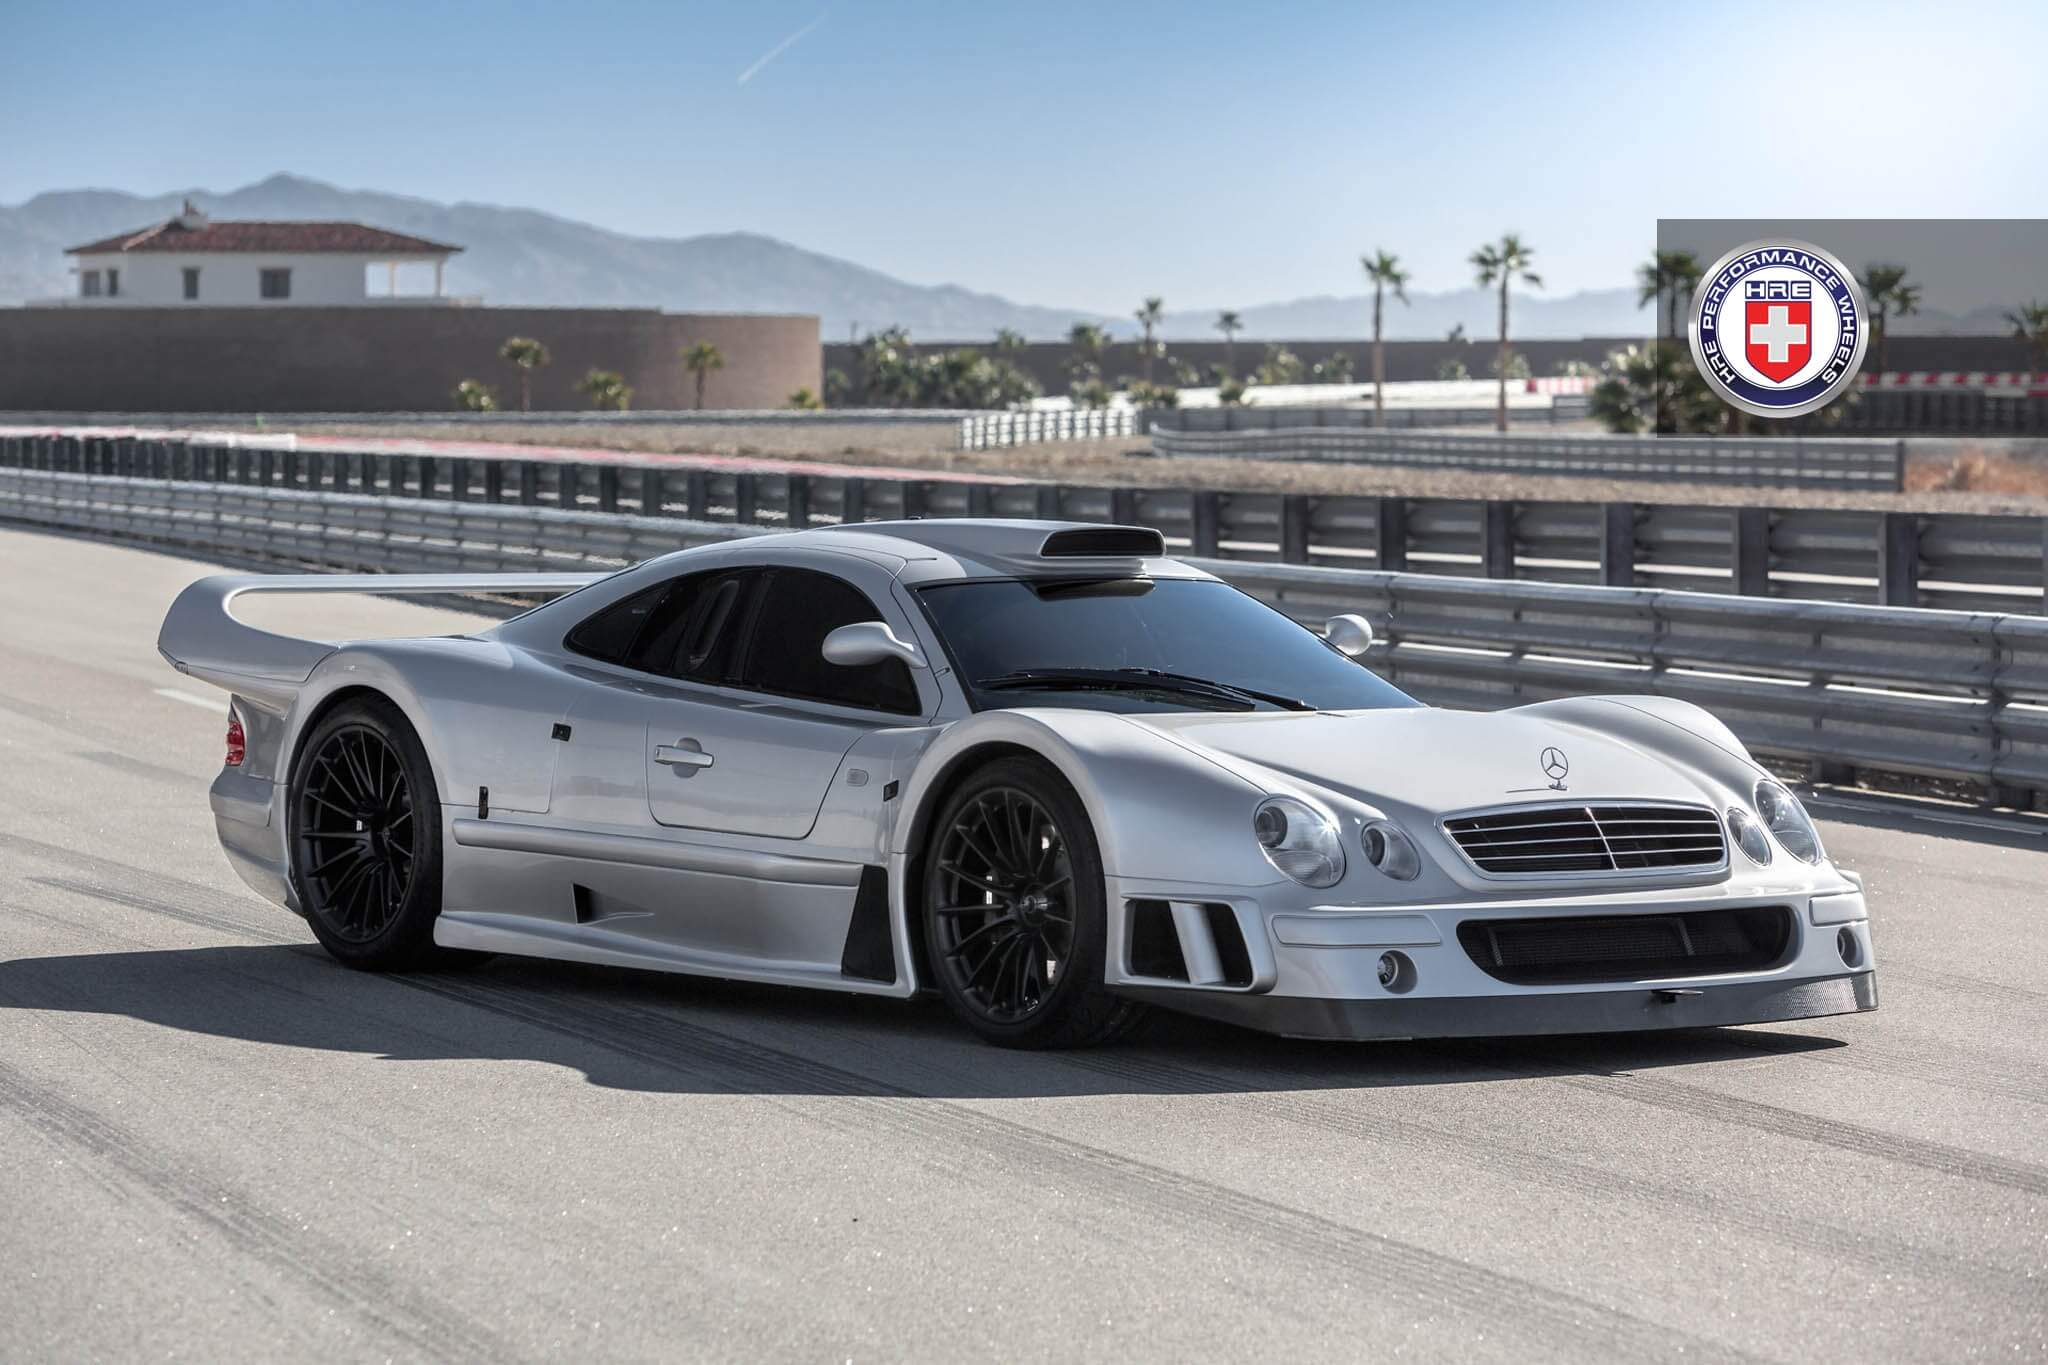 Mercedes Benz CLK GTR With HRE P103 In Satin Black | HRE Performance Wheels